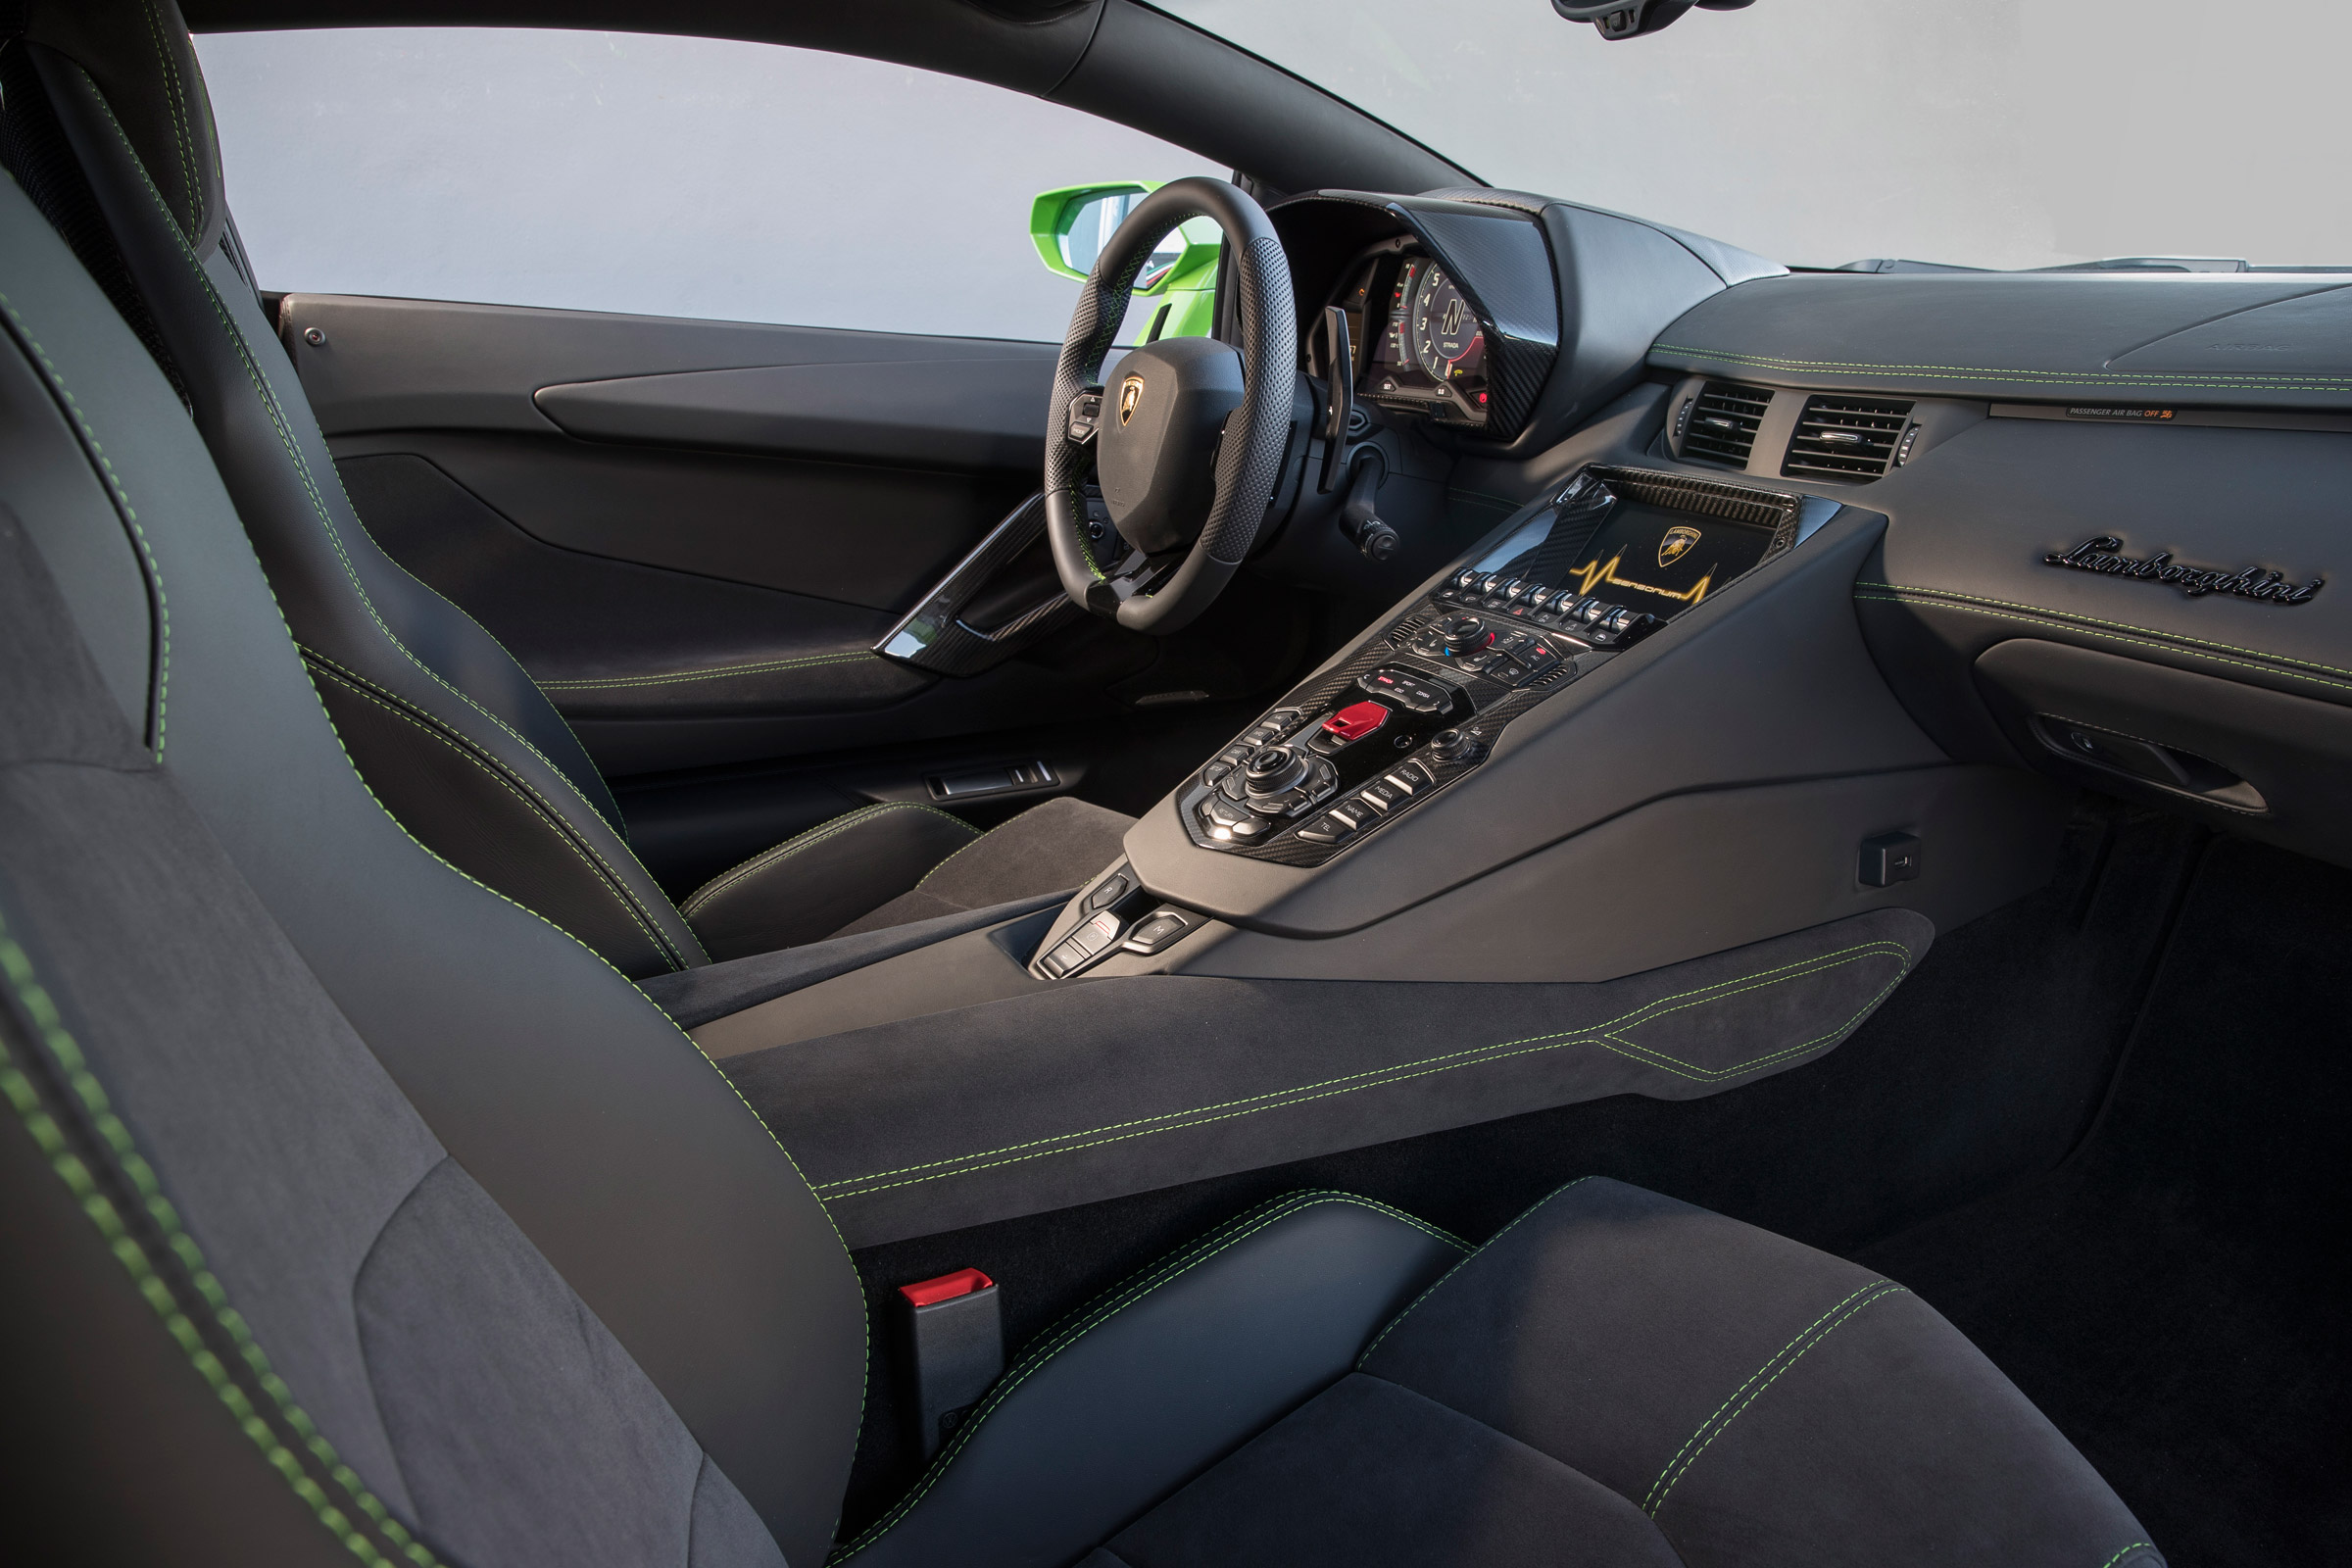 2017 Lamborghini Aventador S Interior Dashboard (Photo 13 of 20)